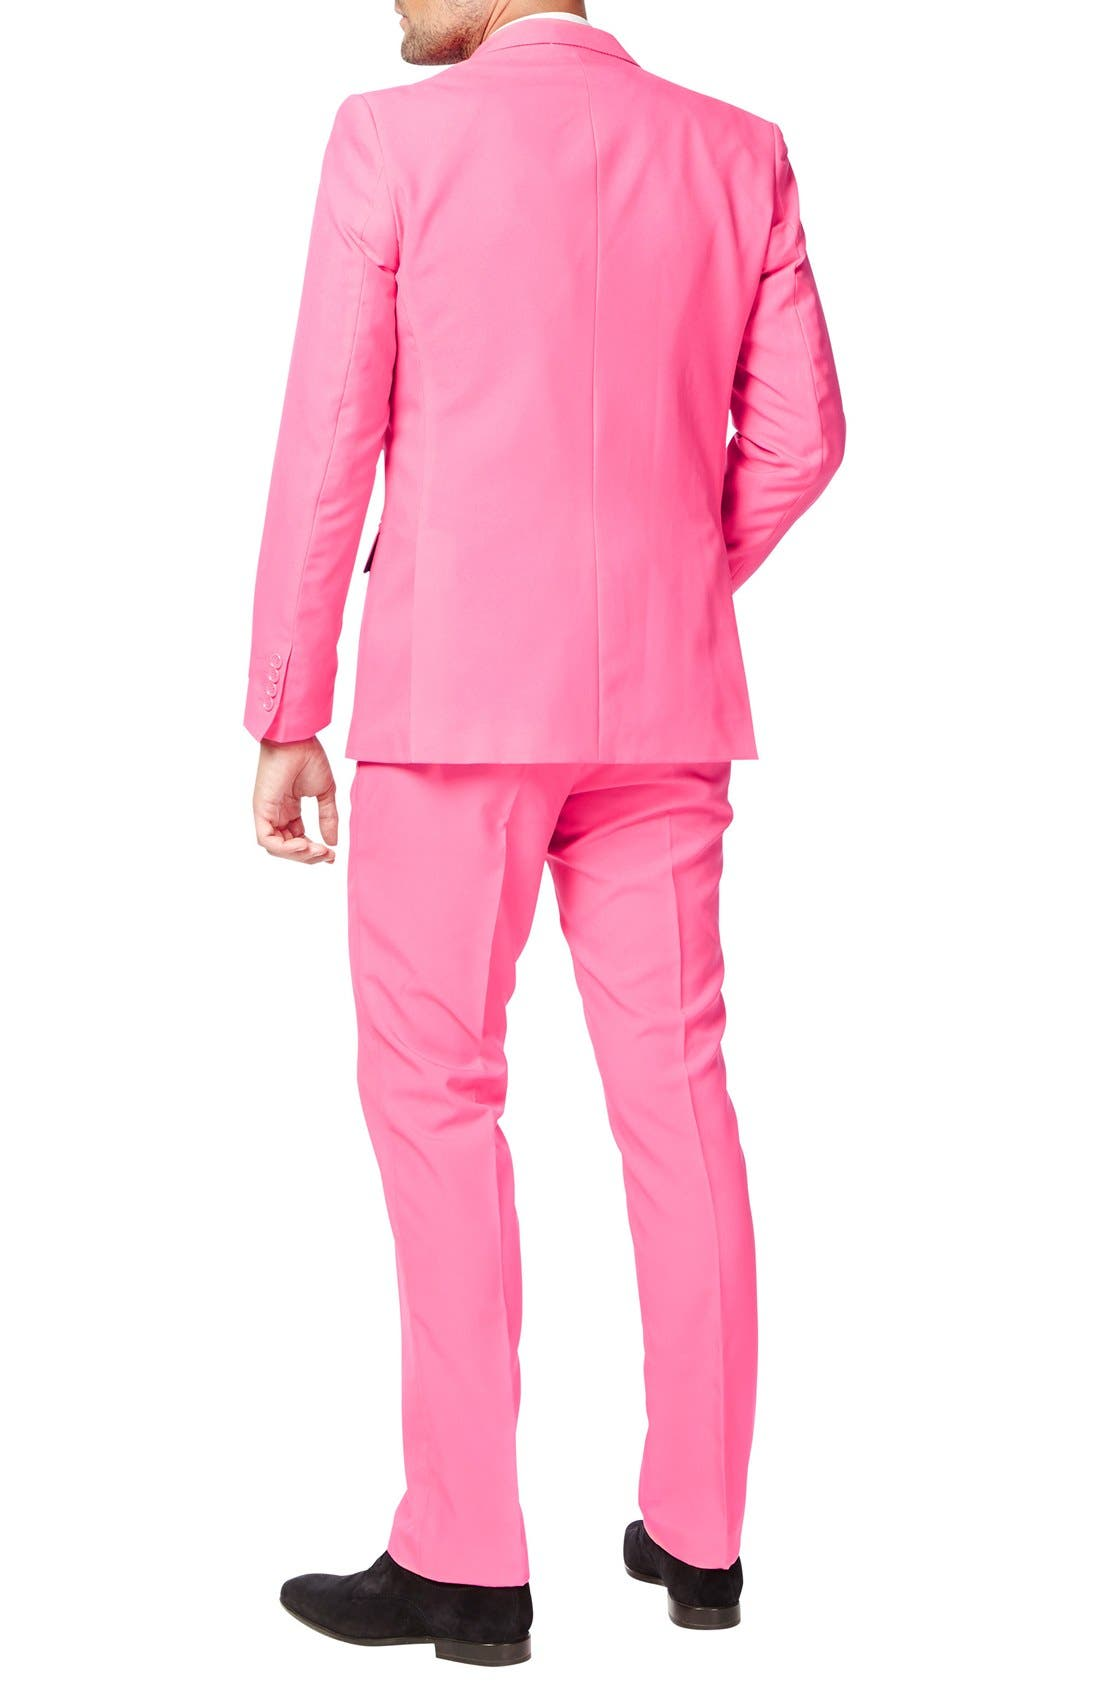 Alternate Image 2  - OppoSuits 'Mr. Pink' Trim Fit Two-Piece Suit with Tie